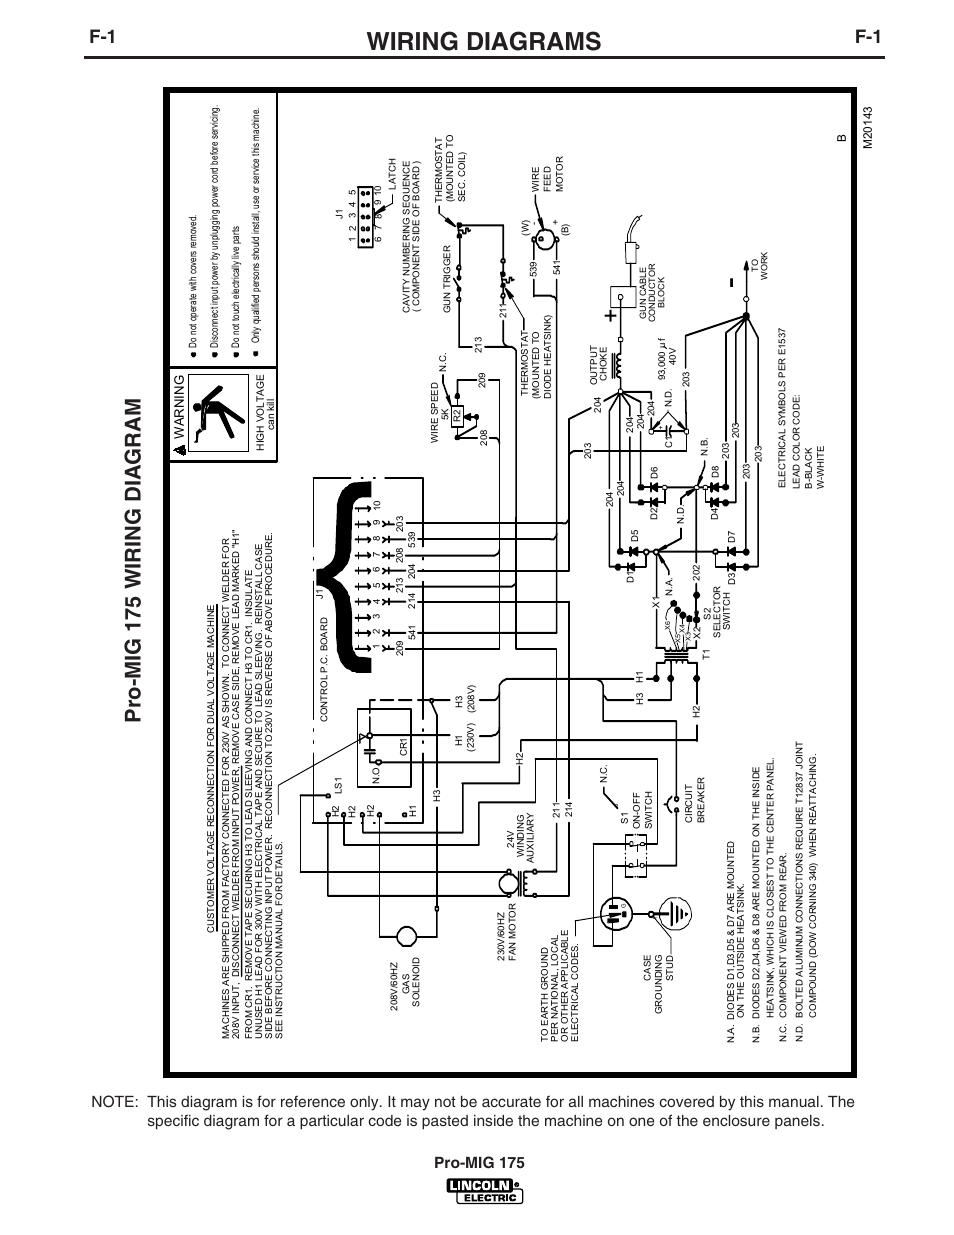 hight resolution of wiring diagrams pro mig 175 wiring diagram pro mig 175 lincolnwiring diagrams pro